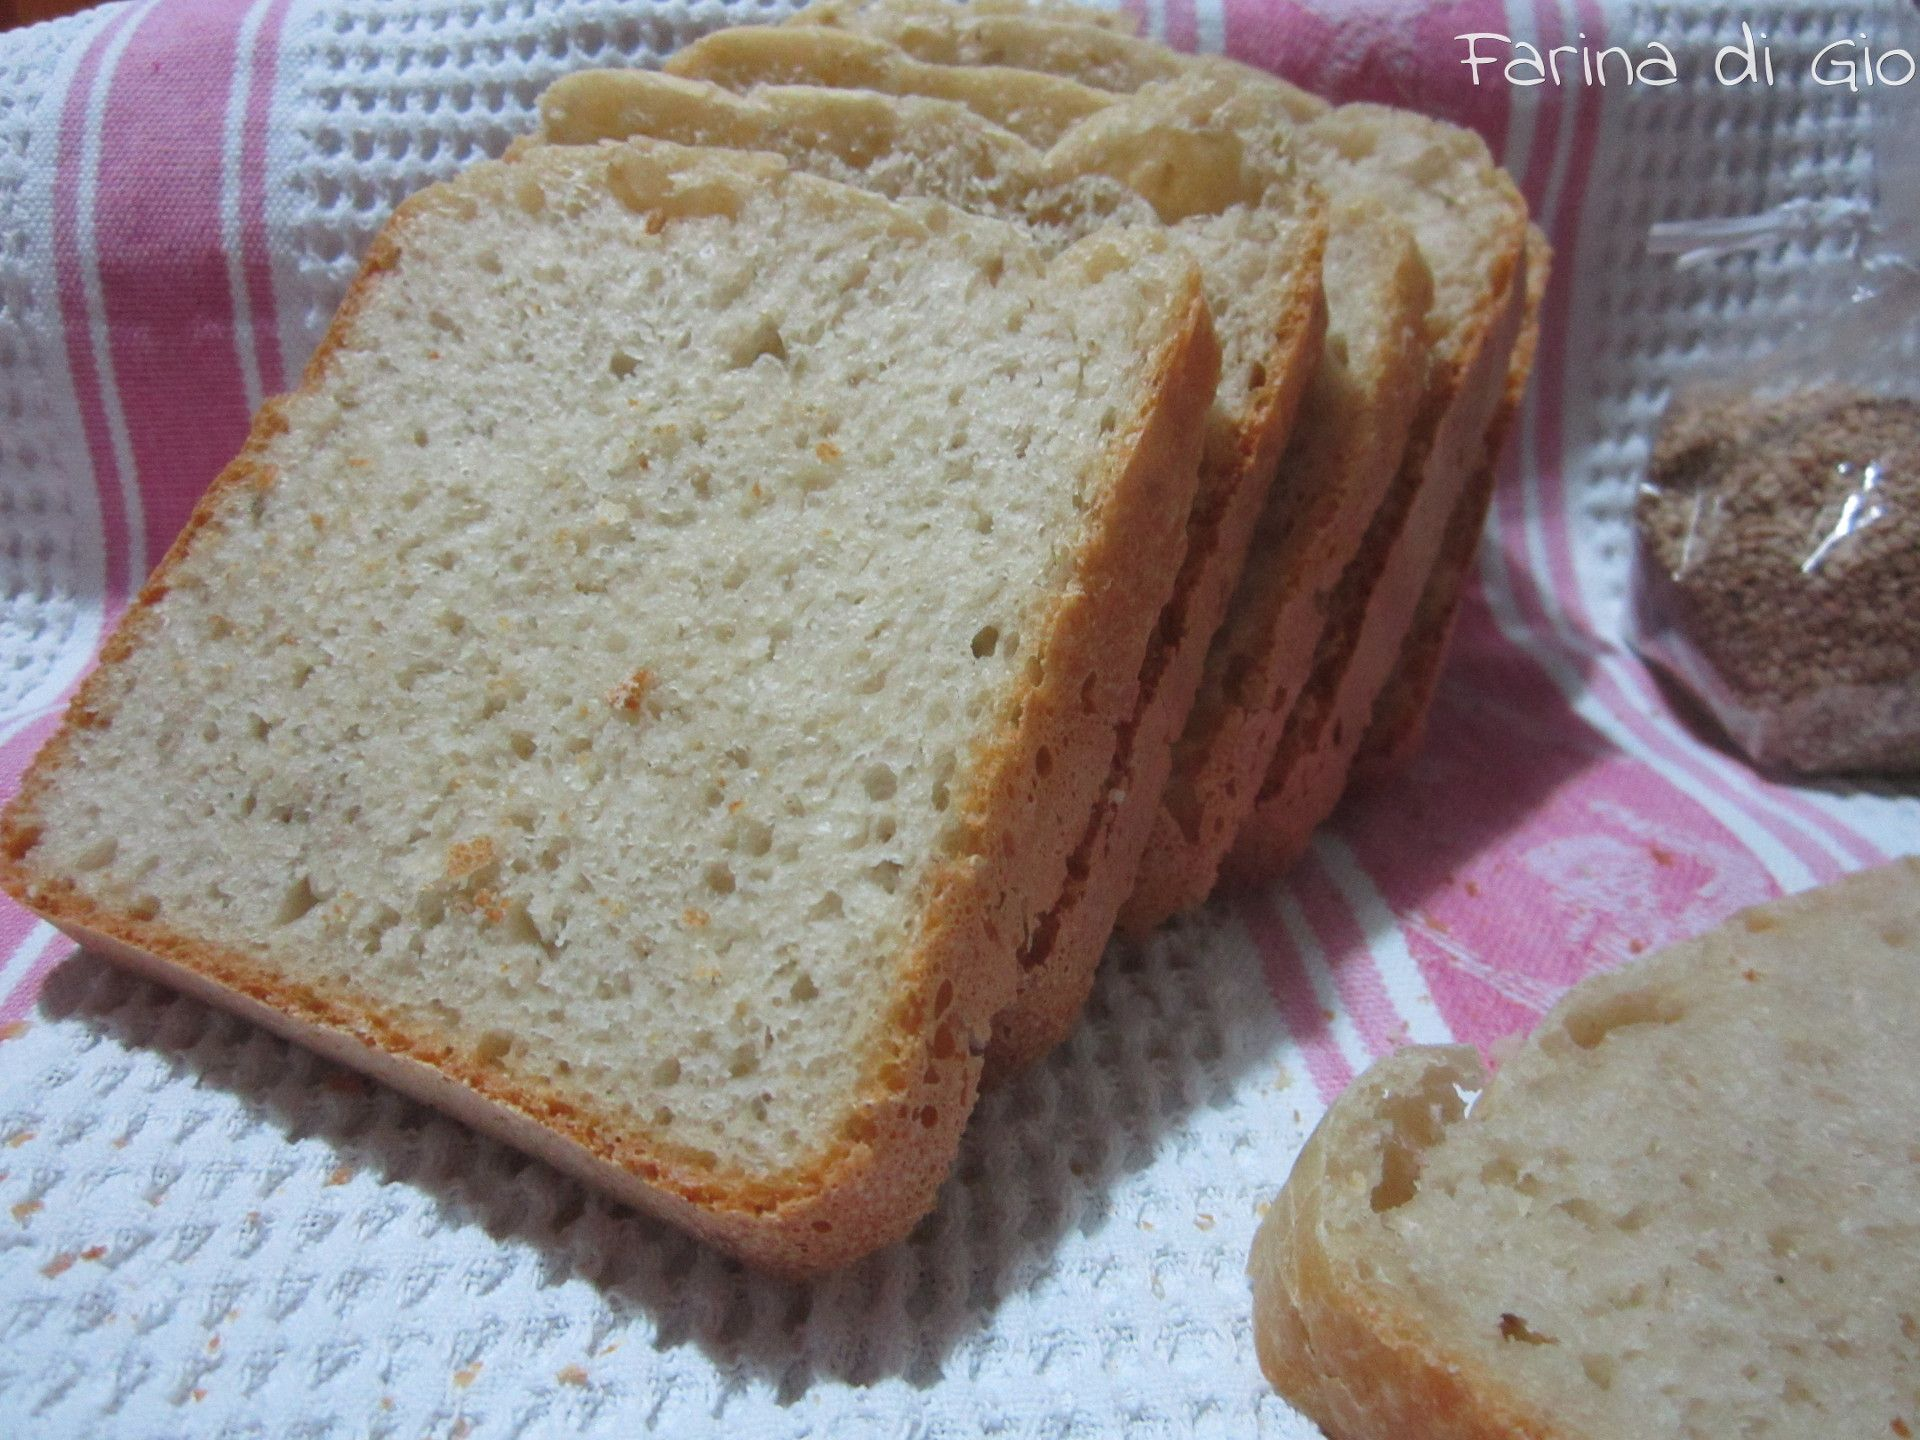 #bread with spelt flour and sesame seeds